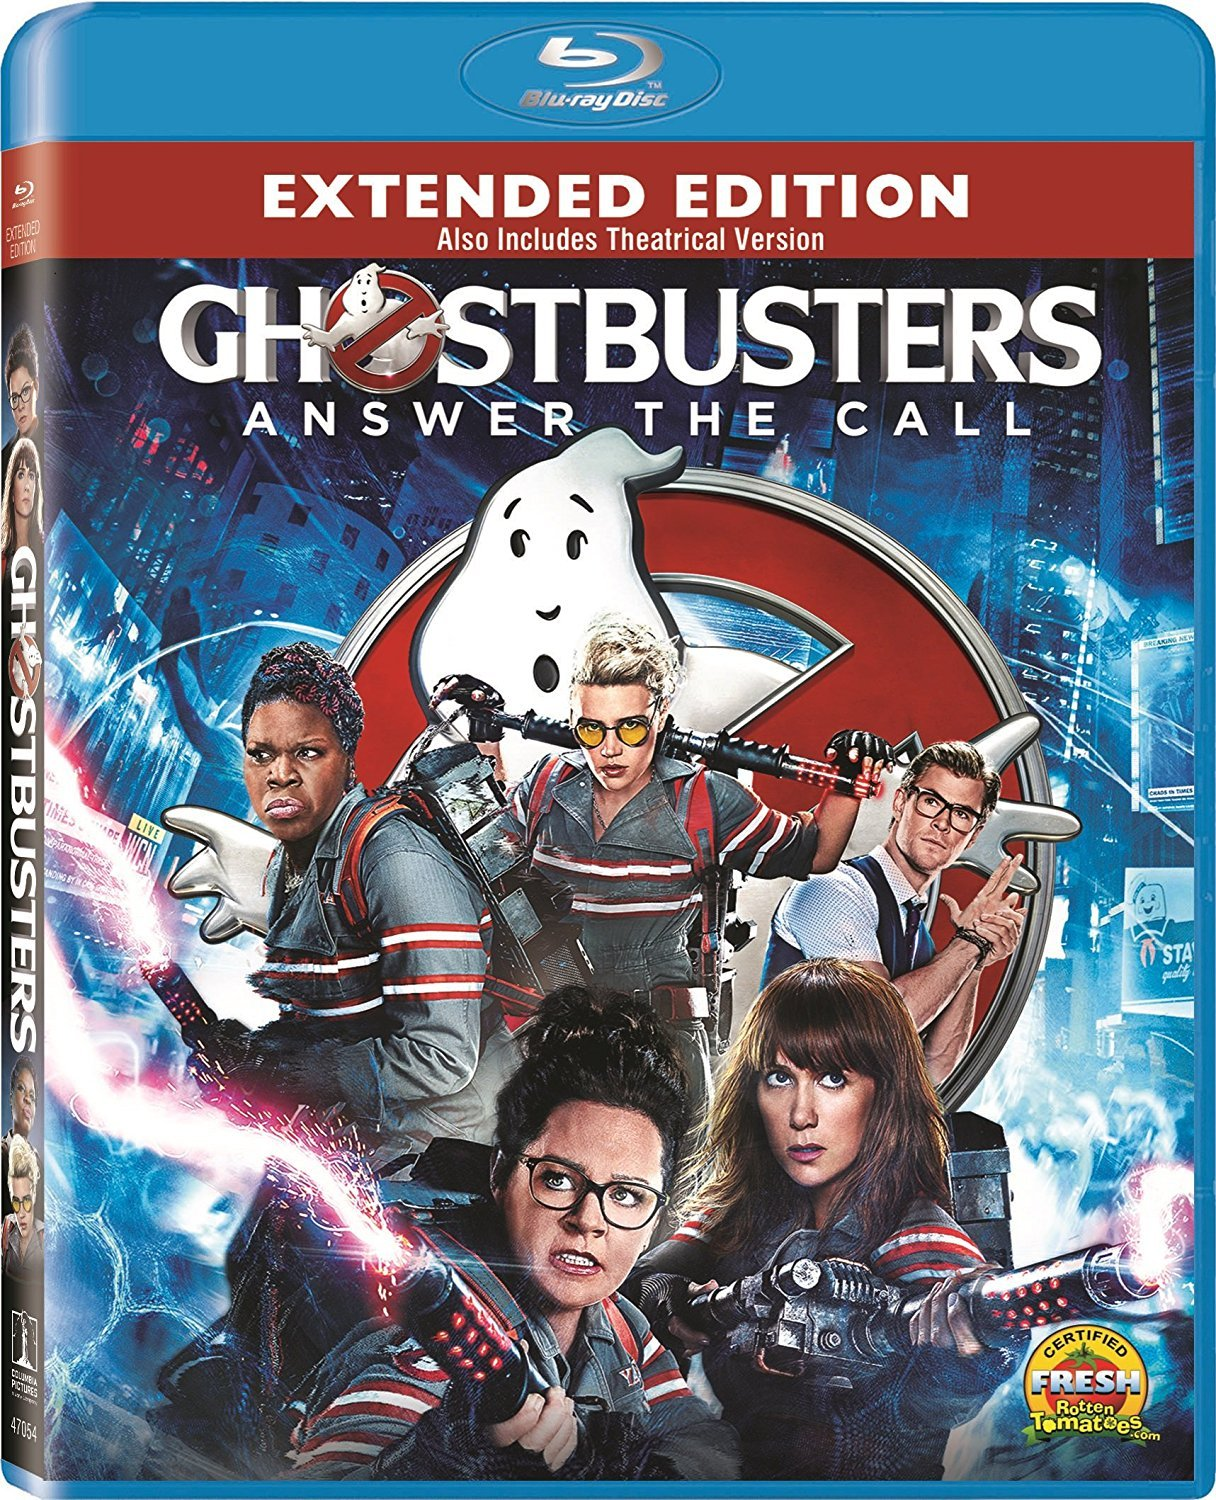 Ghostbusters: Extended Edition (Blu-ray Disc, 2016)